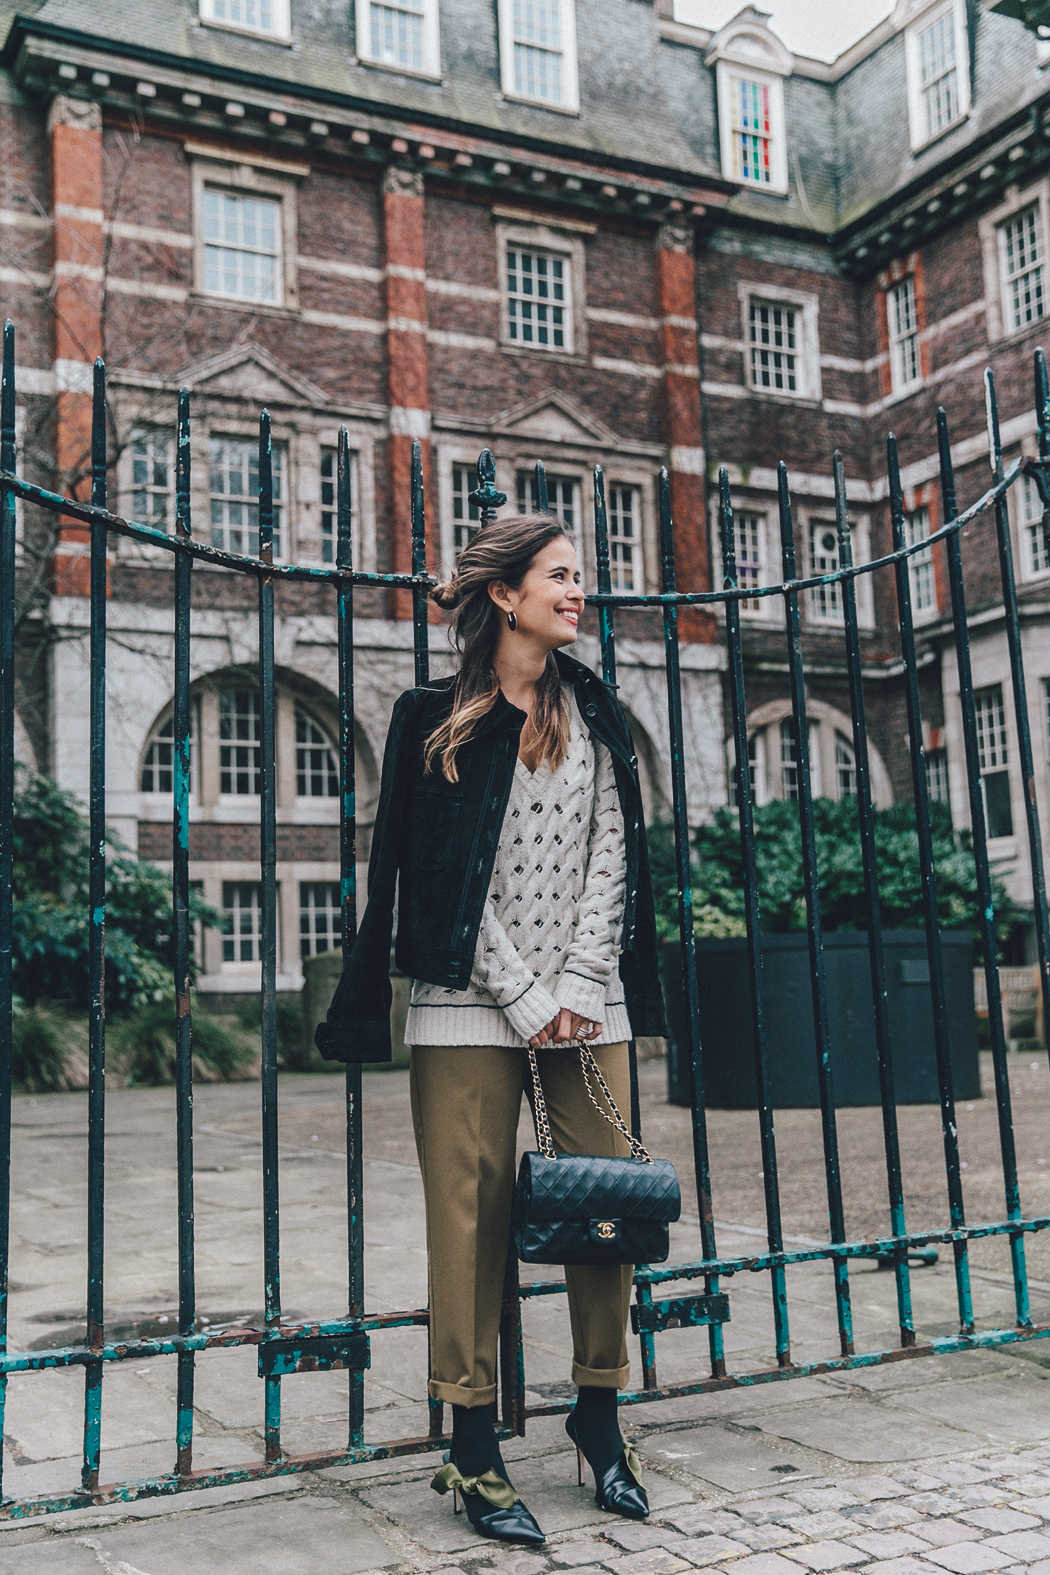 Topshop_Unique-Khaki_Trousers-VNeck_Sweater-Suede_Jacket-Bow_Shoes-Outfit-LFW-London_Fashion_Week_Fall_2016-Street_Style-